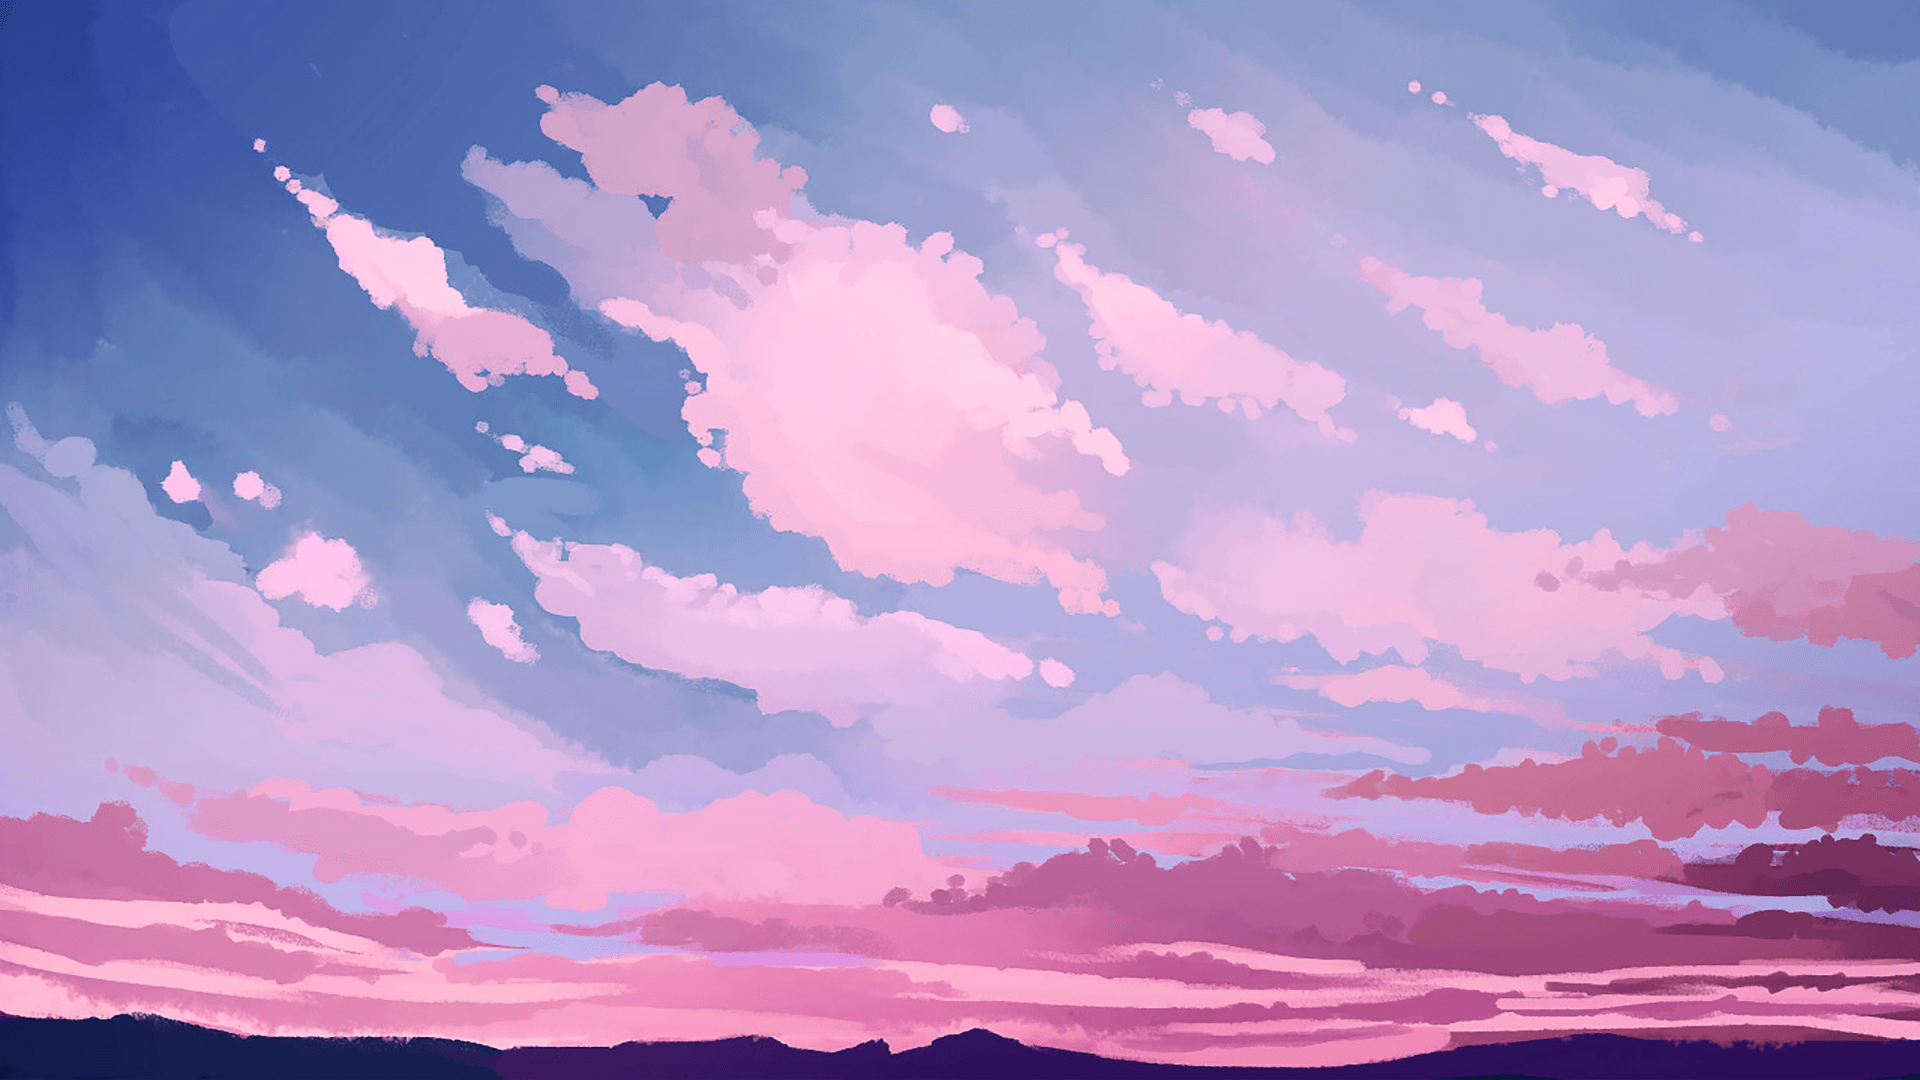 Pink Skies [1920x1080] in 2019